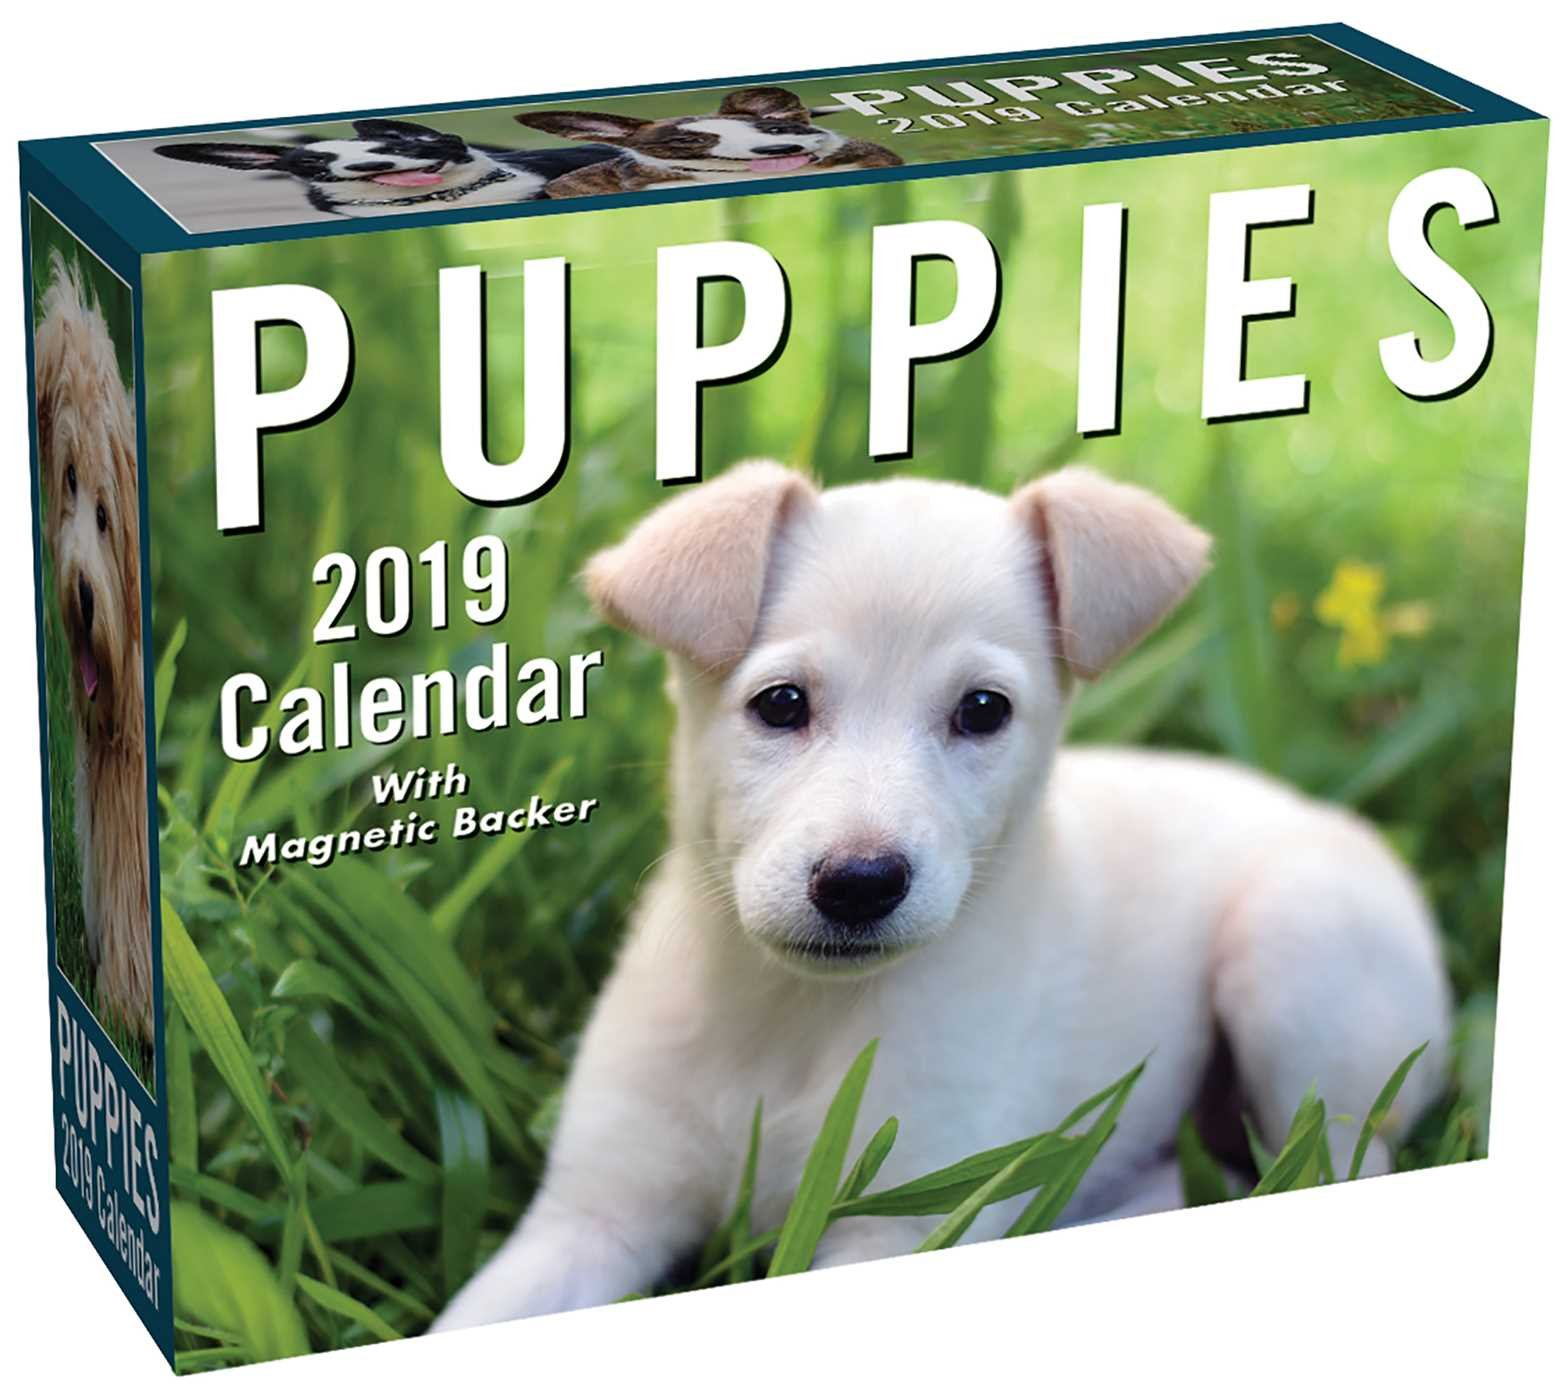 Puppies 2019 Mini Day-to-Day Calendar Calendar – Day to Day Calendar, August 7, 2018 Andrews McMeel Publishing 1449491901 Calendars NON-CLASSIFIABLE